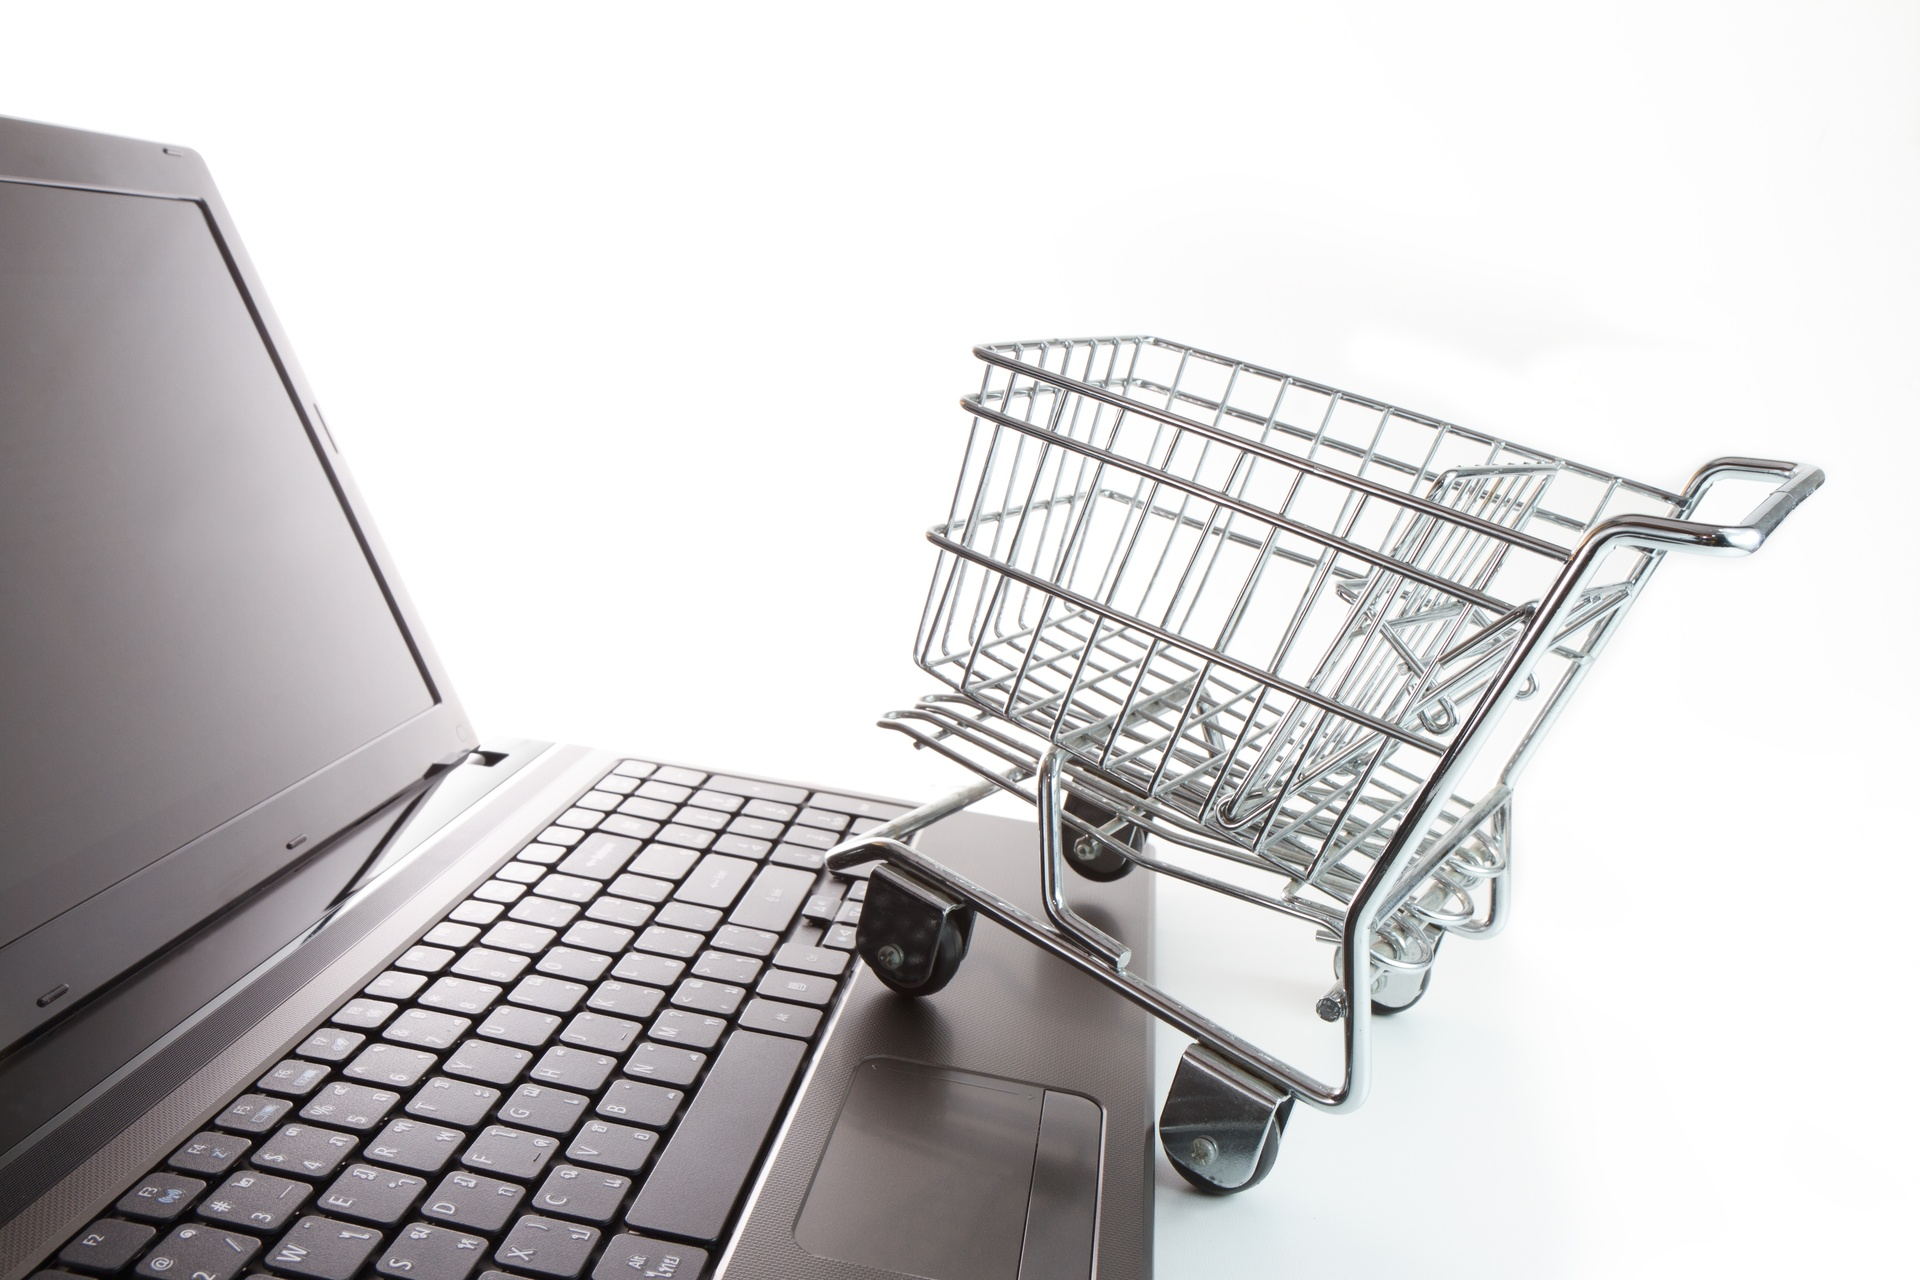 Key Ingredients to Successful Online Selling